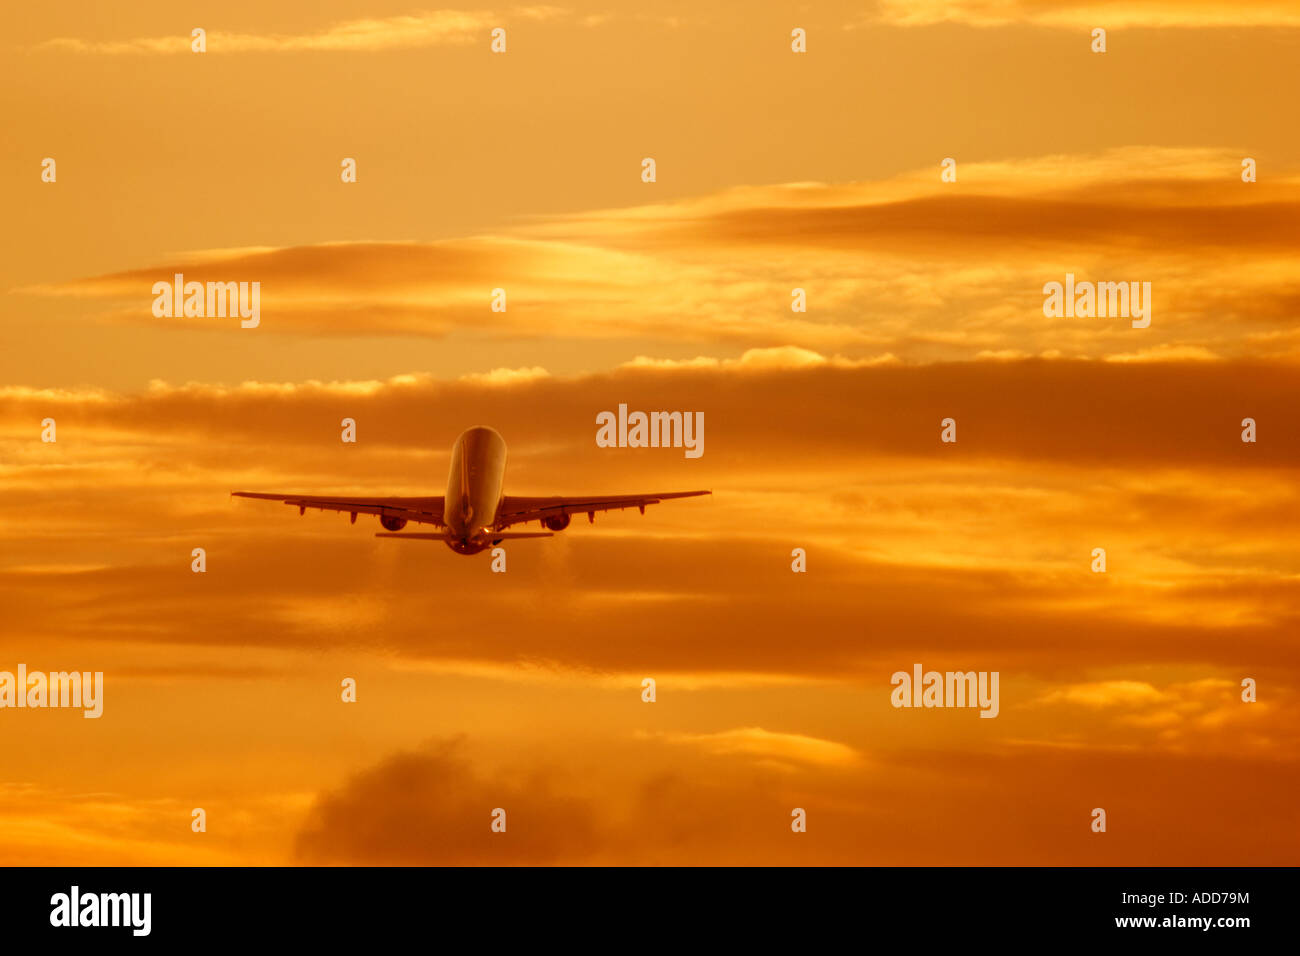 Commercial aviation plane - Stock Image